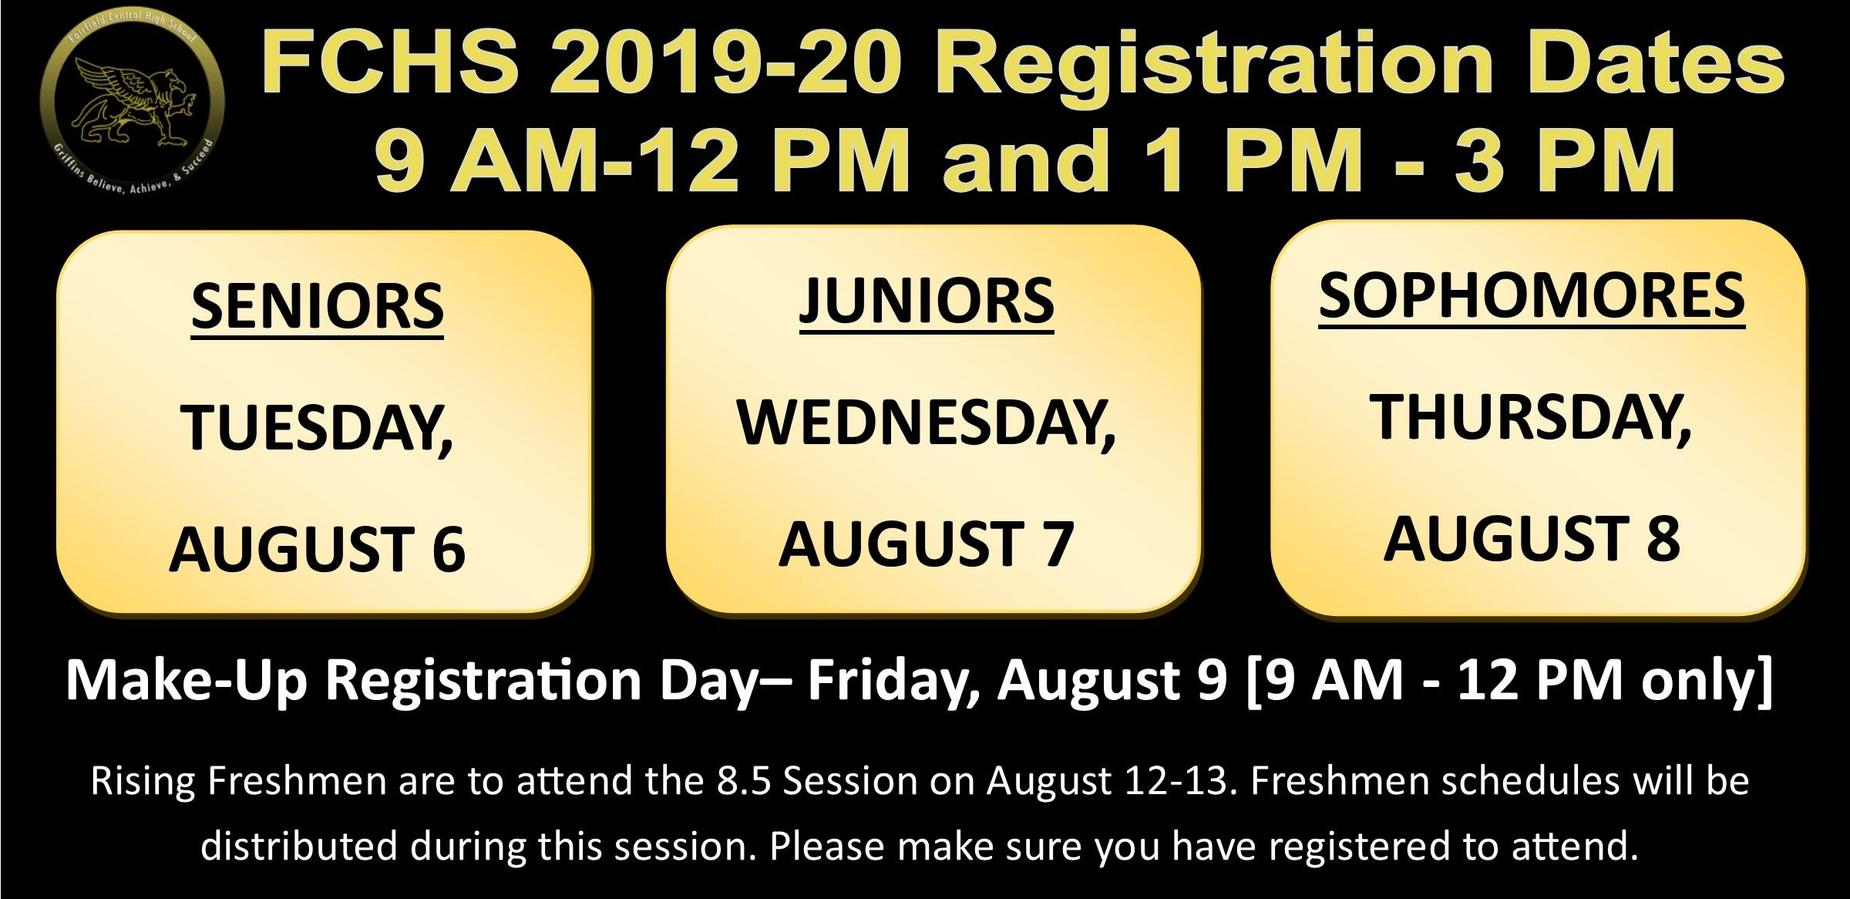 FCHS 2019-20 Registration Dates 9 AM-12 PM and 1 PM - 3 PM;SENIORS TUESDAY,  AUGUST 6; JUNIORS WEDNESDAY,  AUGUST 7; SOPHOMORES THURSDAY,  AUGUST 8; Make-Up Registration Day– Friday, August 9 [9 AM - 12 PM only] Rising Freshmen are to attend the 8.5 Session on August 12-13. Freshmen schedules will be distributed during this session. Please make sure you have registered to attend.